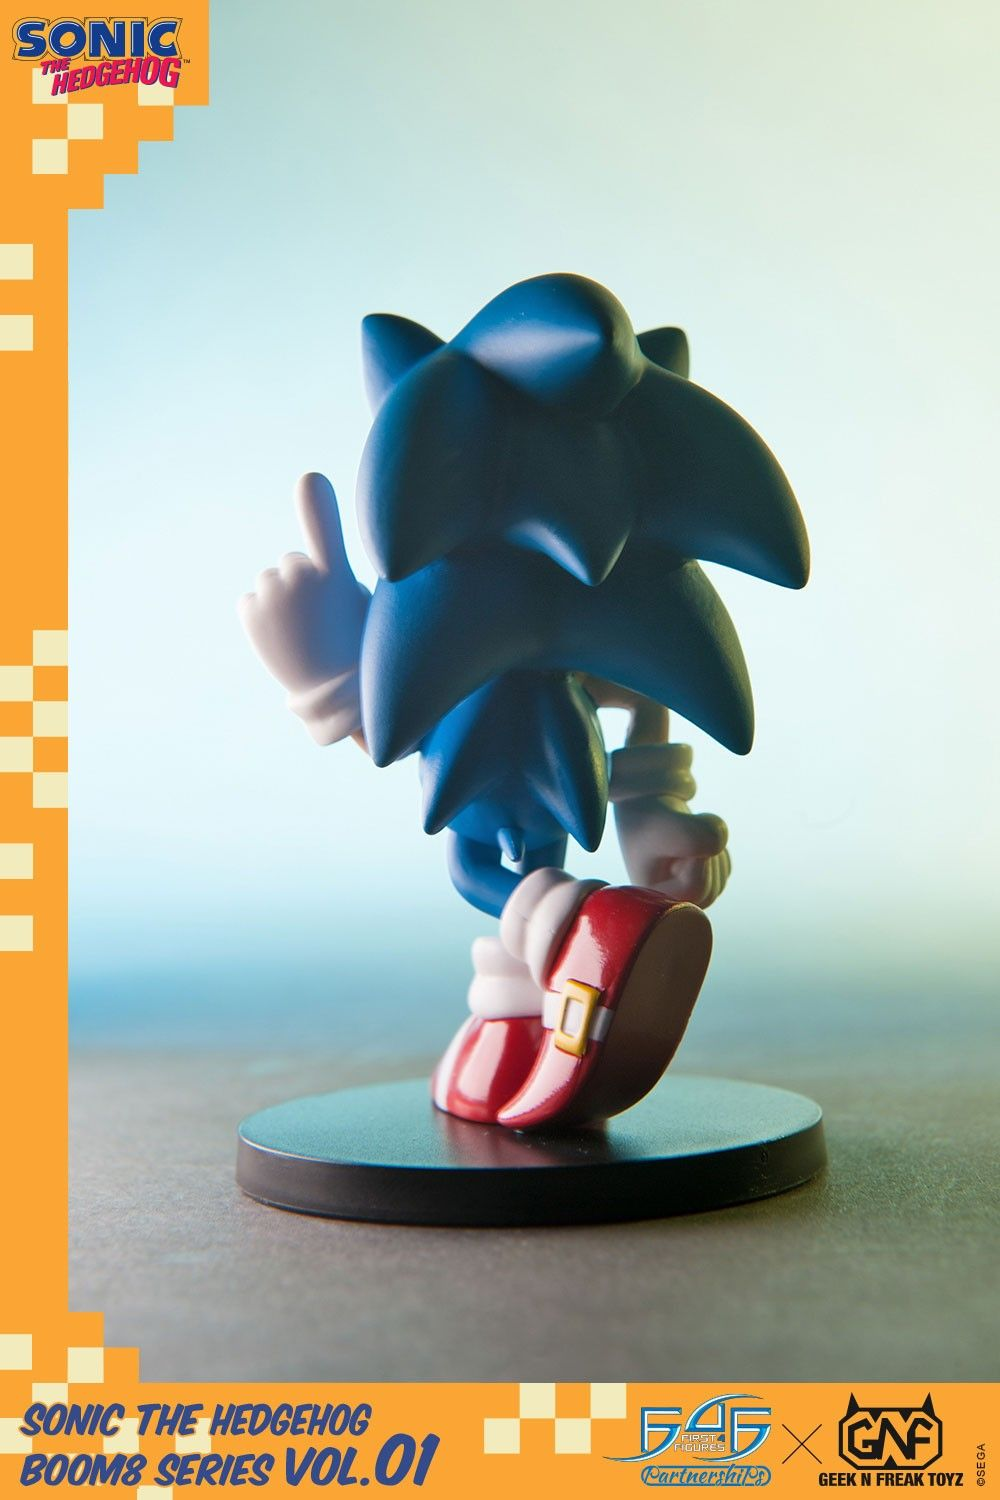 Sonic Number 1 - The Hedgehog Boom Series Vol 1